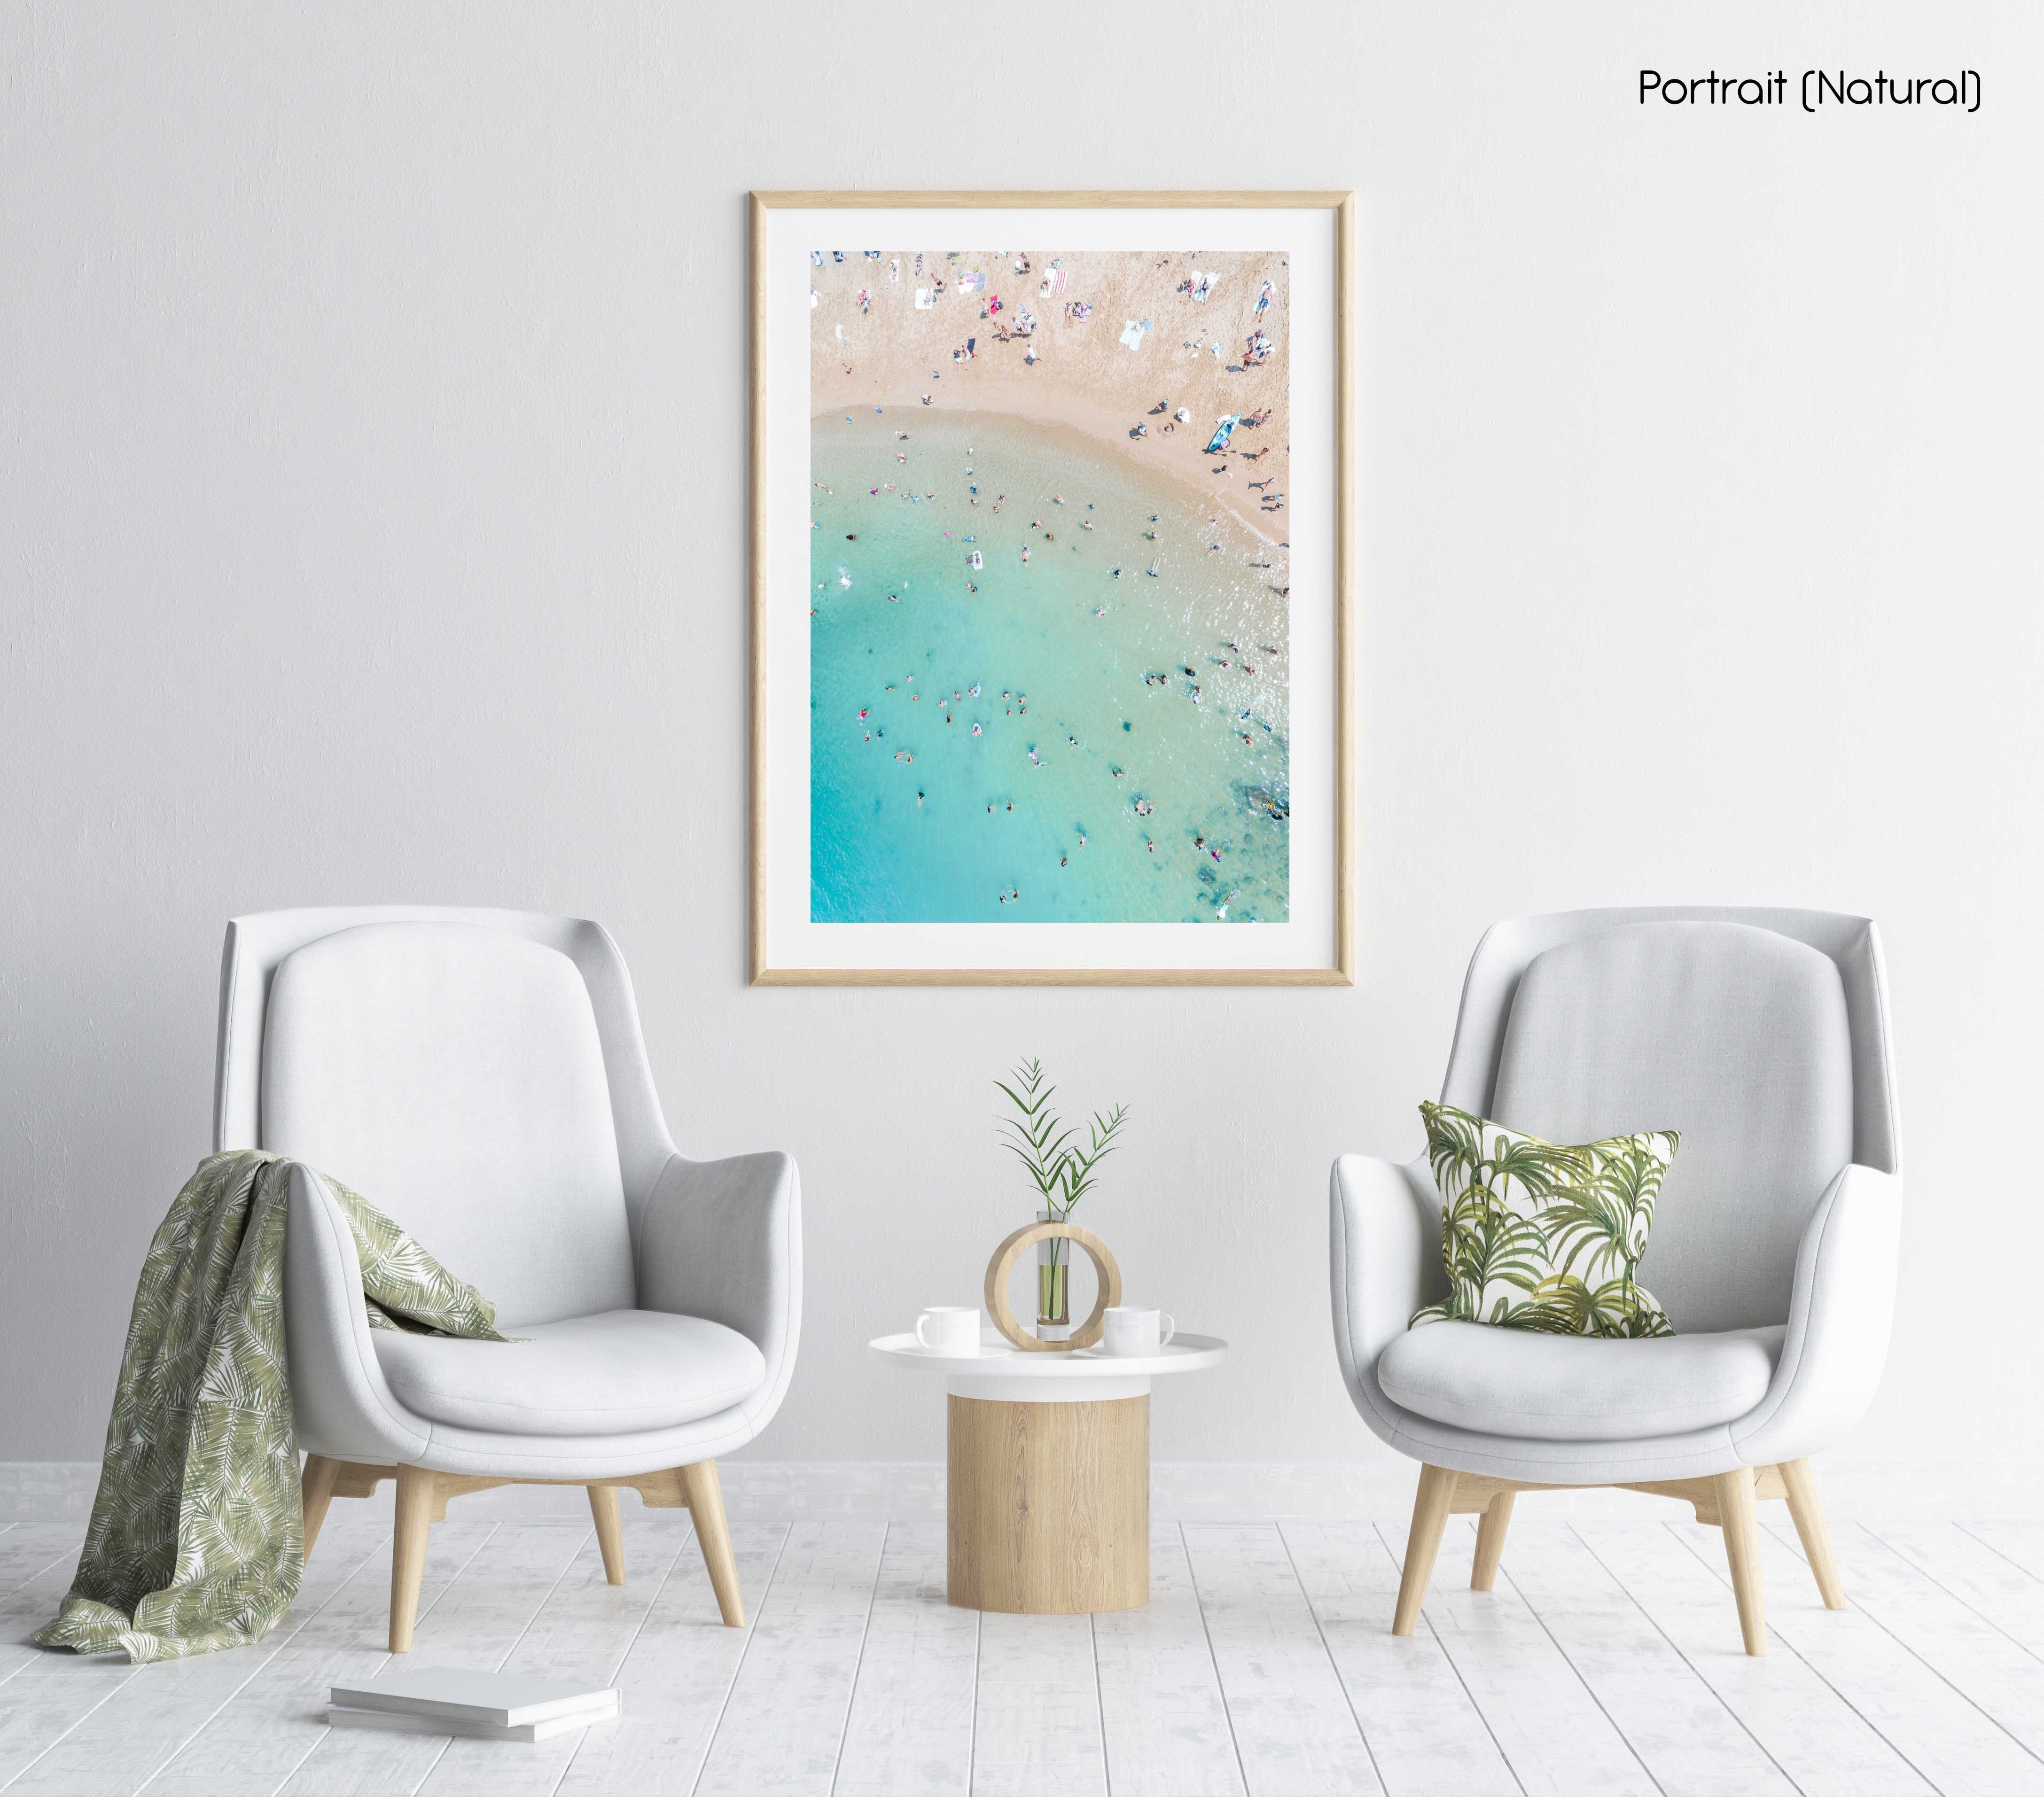 Aerial topdown of blue sea and people swimming at the beach in Sydney in a natural fine art frame